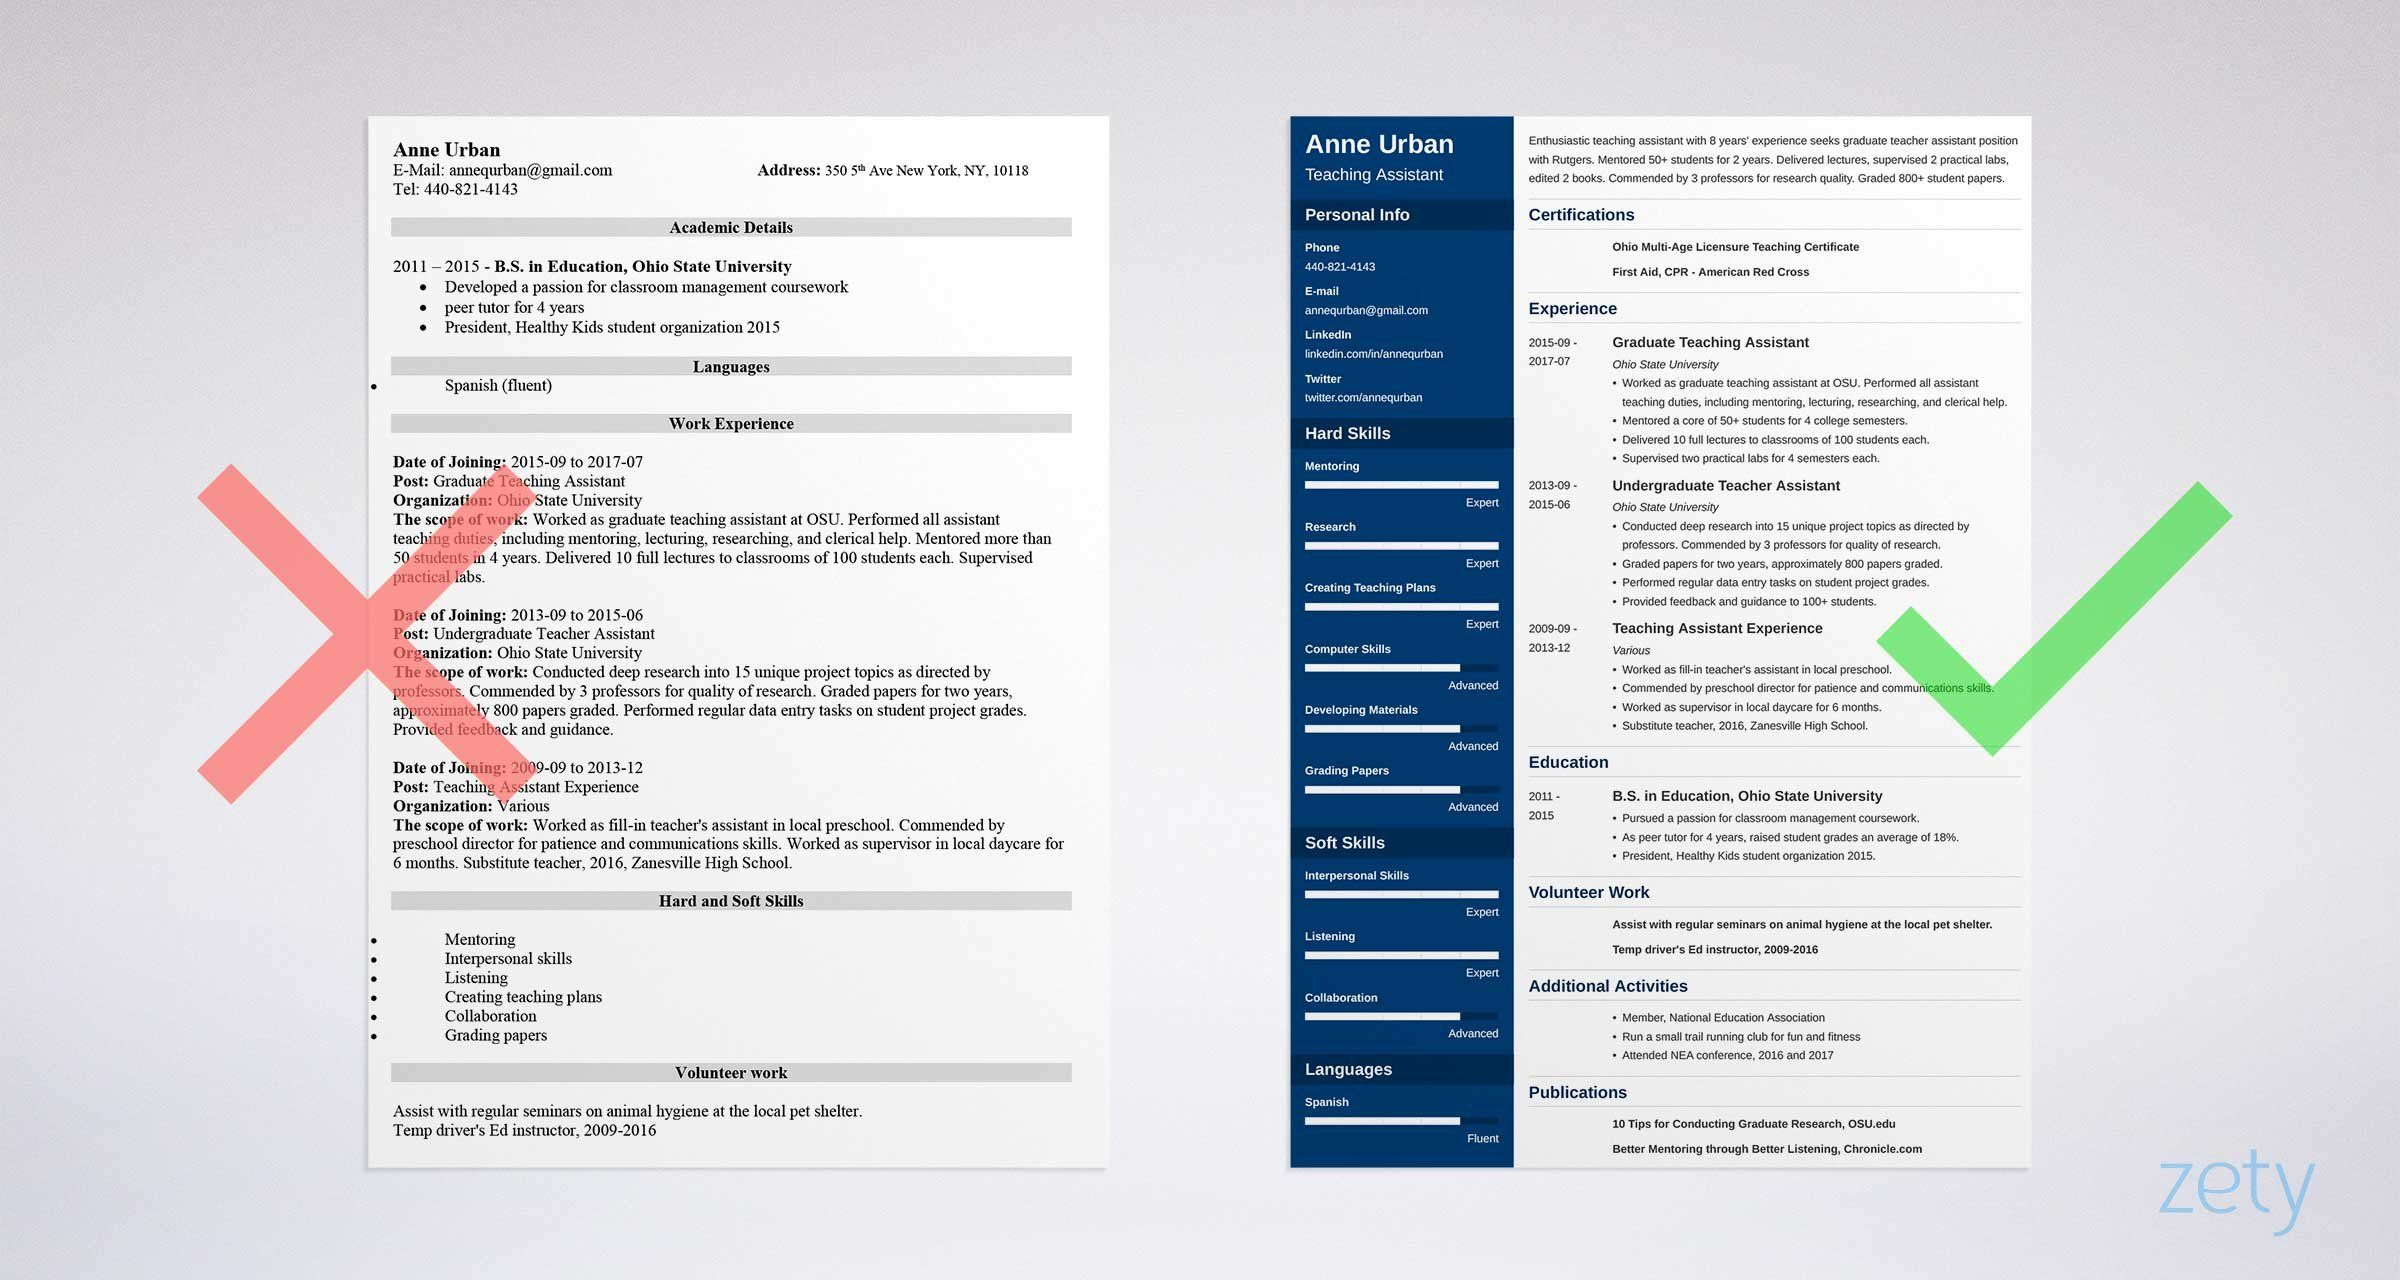 Best Font for a Resume Professional Fonts & What Size to